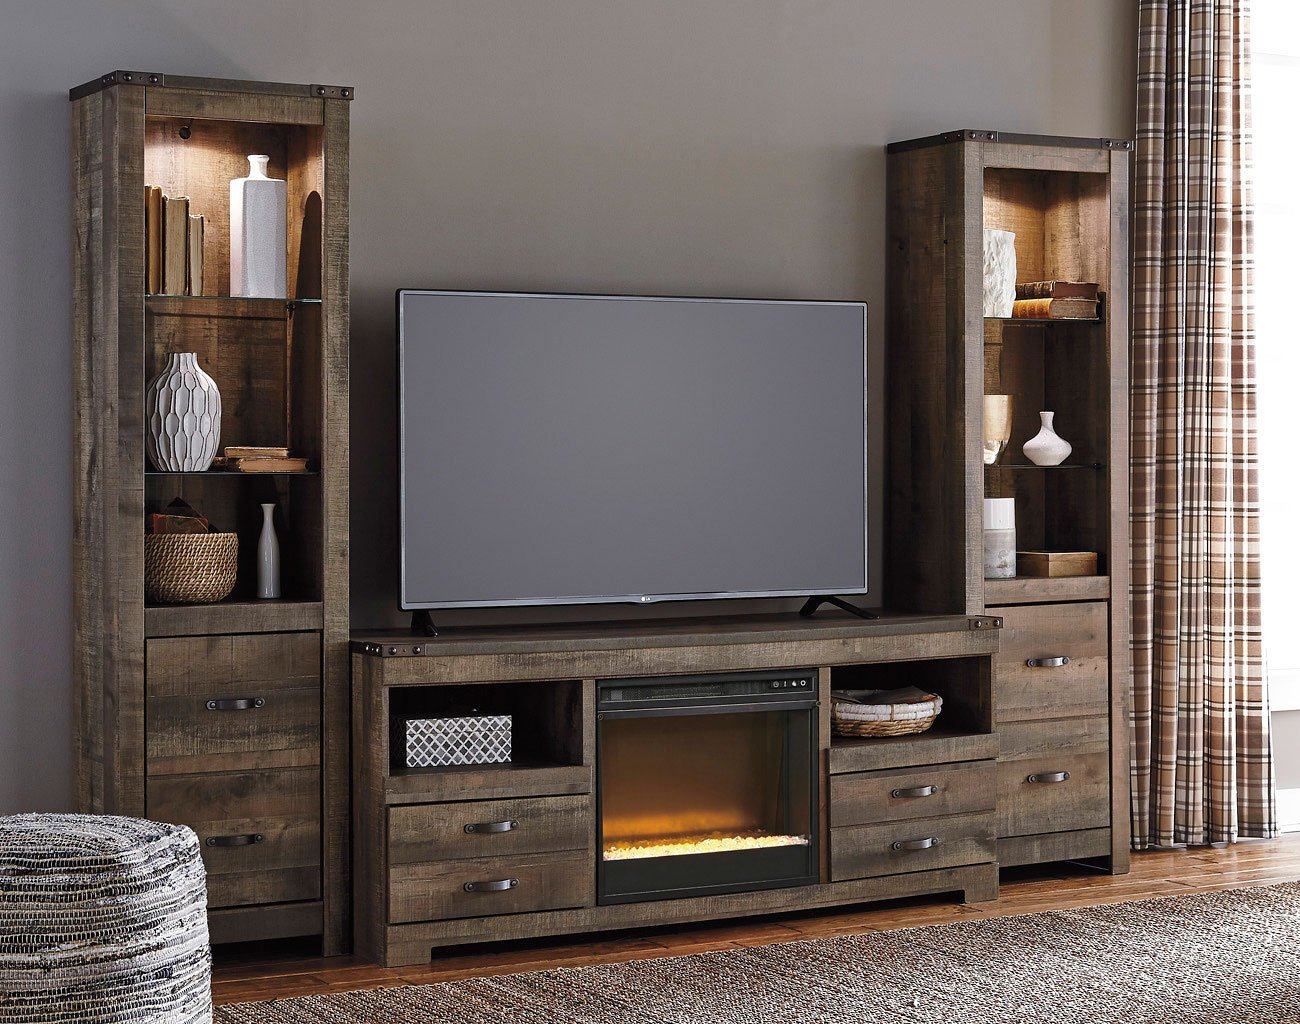 living room dressers grey fabric sofa ideas trinell entertainment center w/ glass and stone fireplace ...